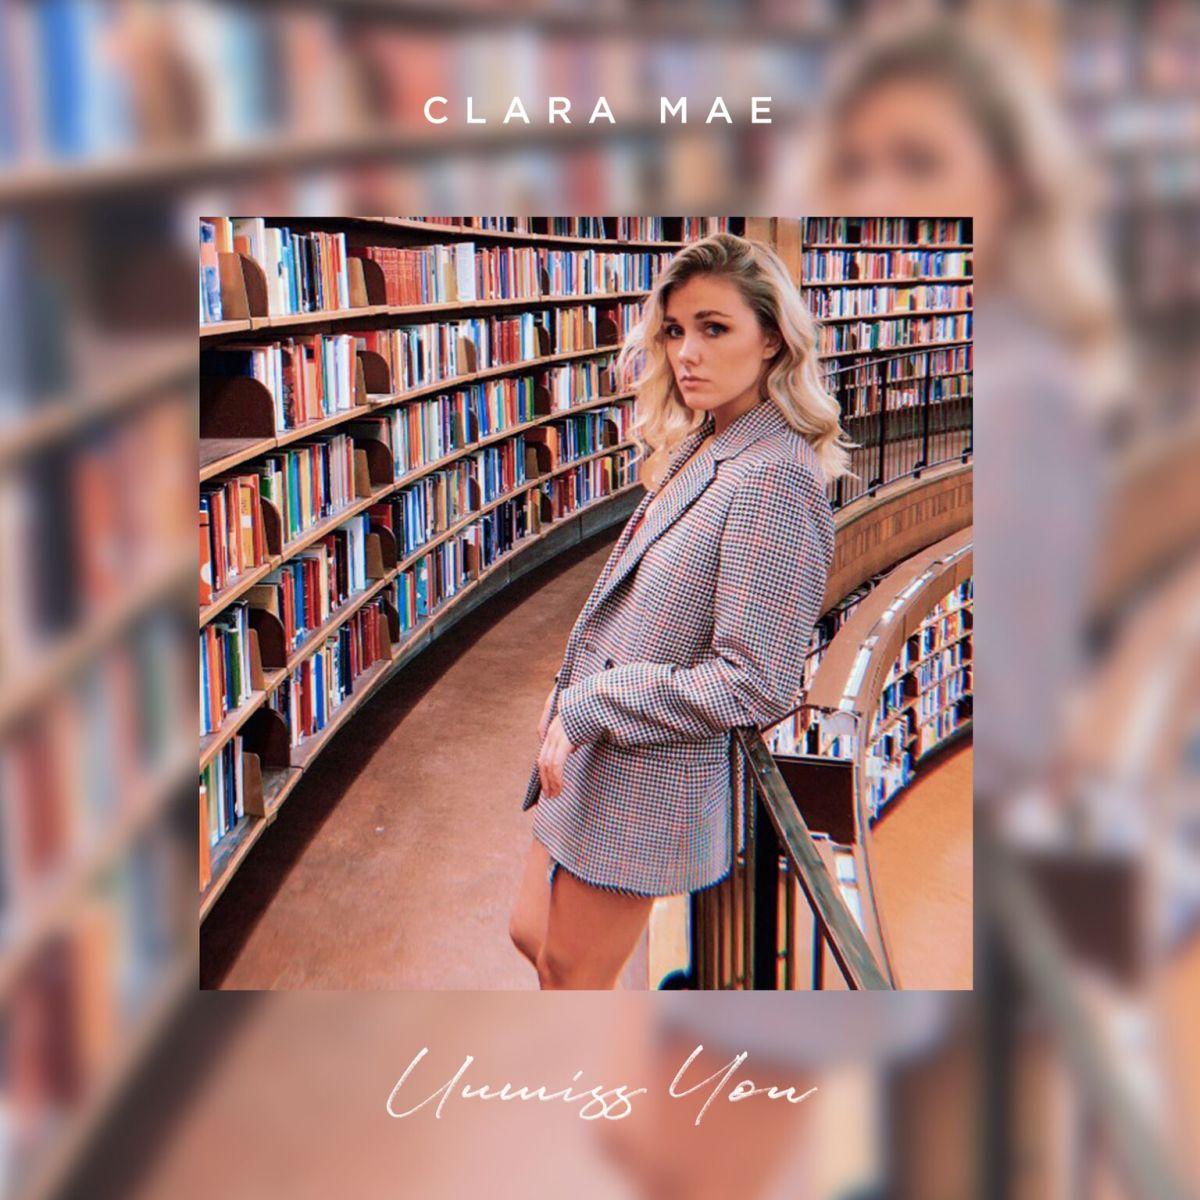 Clara Mae Unmiss You Album Art